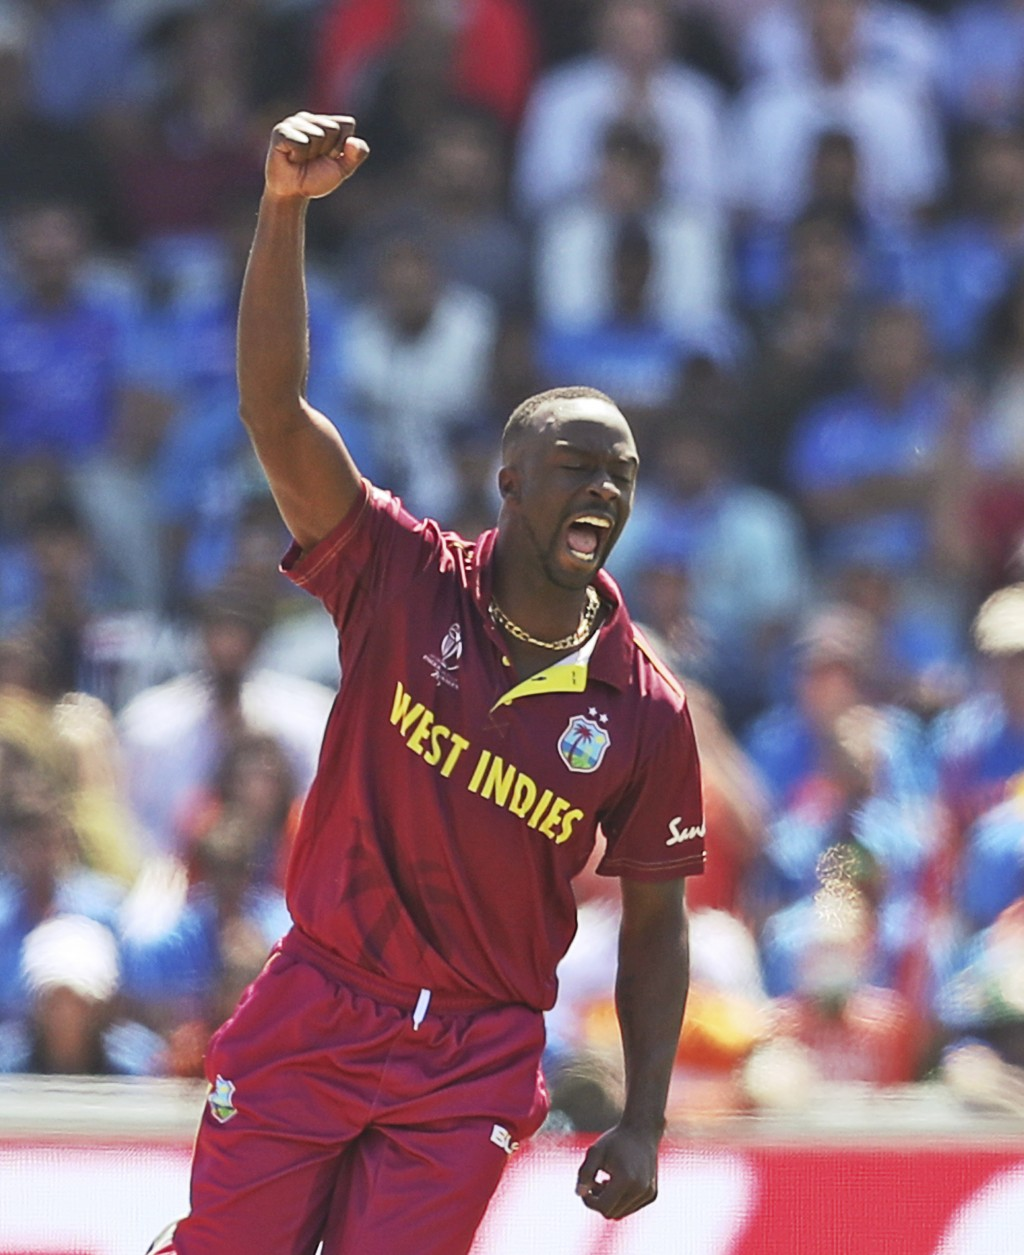 West Indies' Kemar Roach celebrates the dismissal of India's Vijay Shankar during the Cricket World Cup match between India and West Indies at Old Tra...